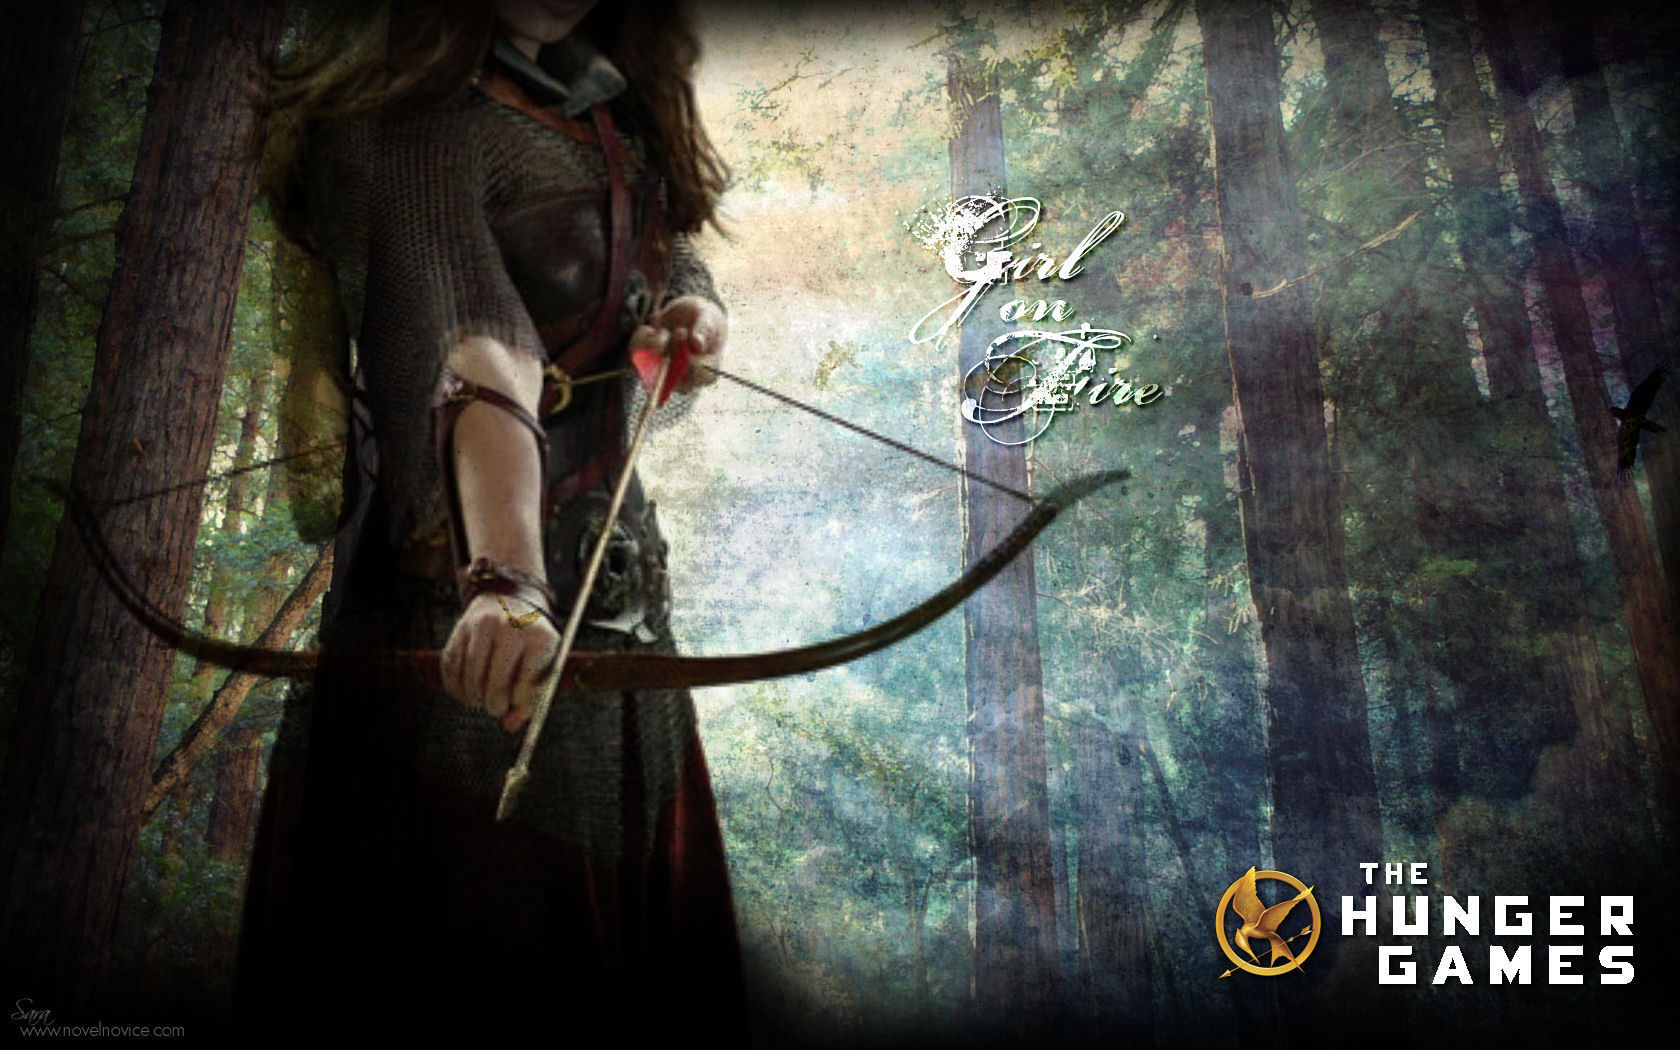 The Hunger Games images quotThe Hunger Gamesquot Wallpapers HD 1680x1050